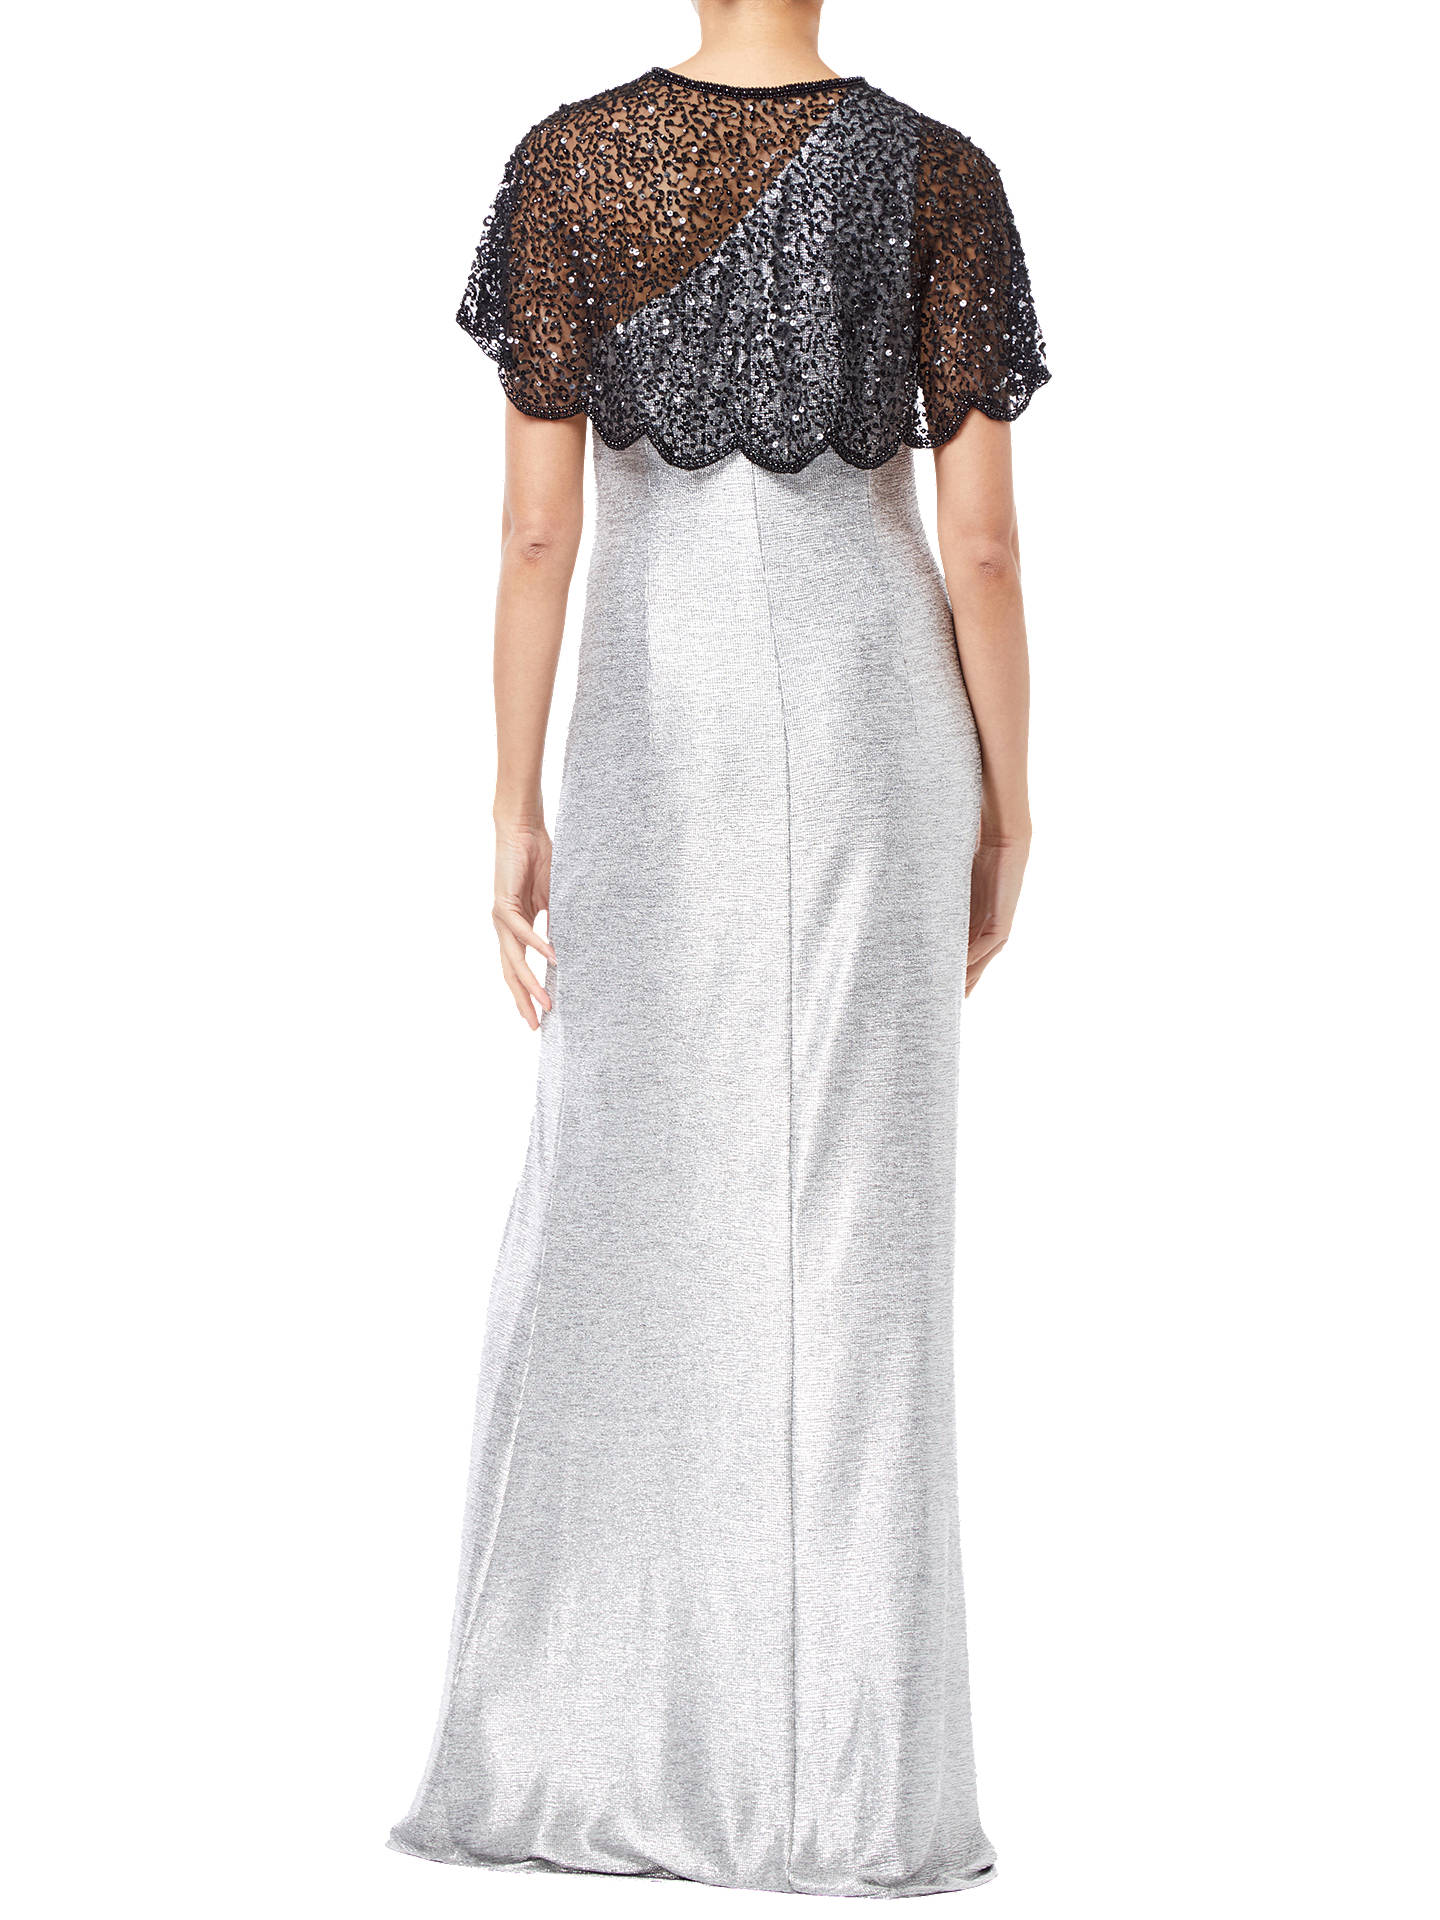 BuyAdrianna Papell Beaded Mesh Cover Up, Black, S Online at johnlewis.com